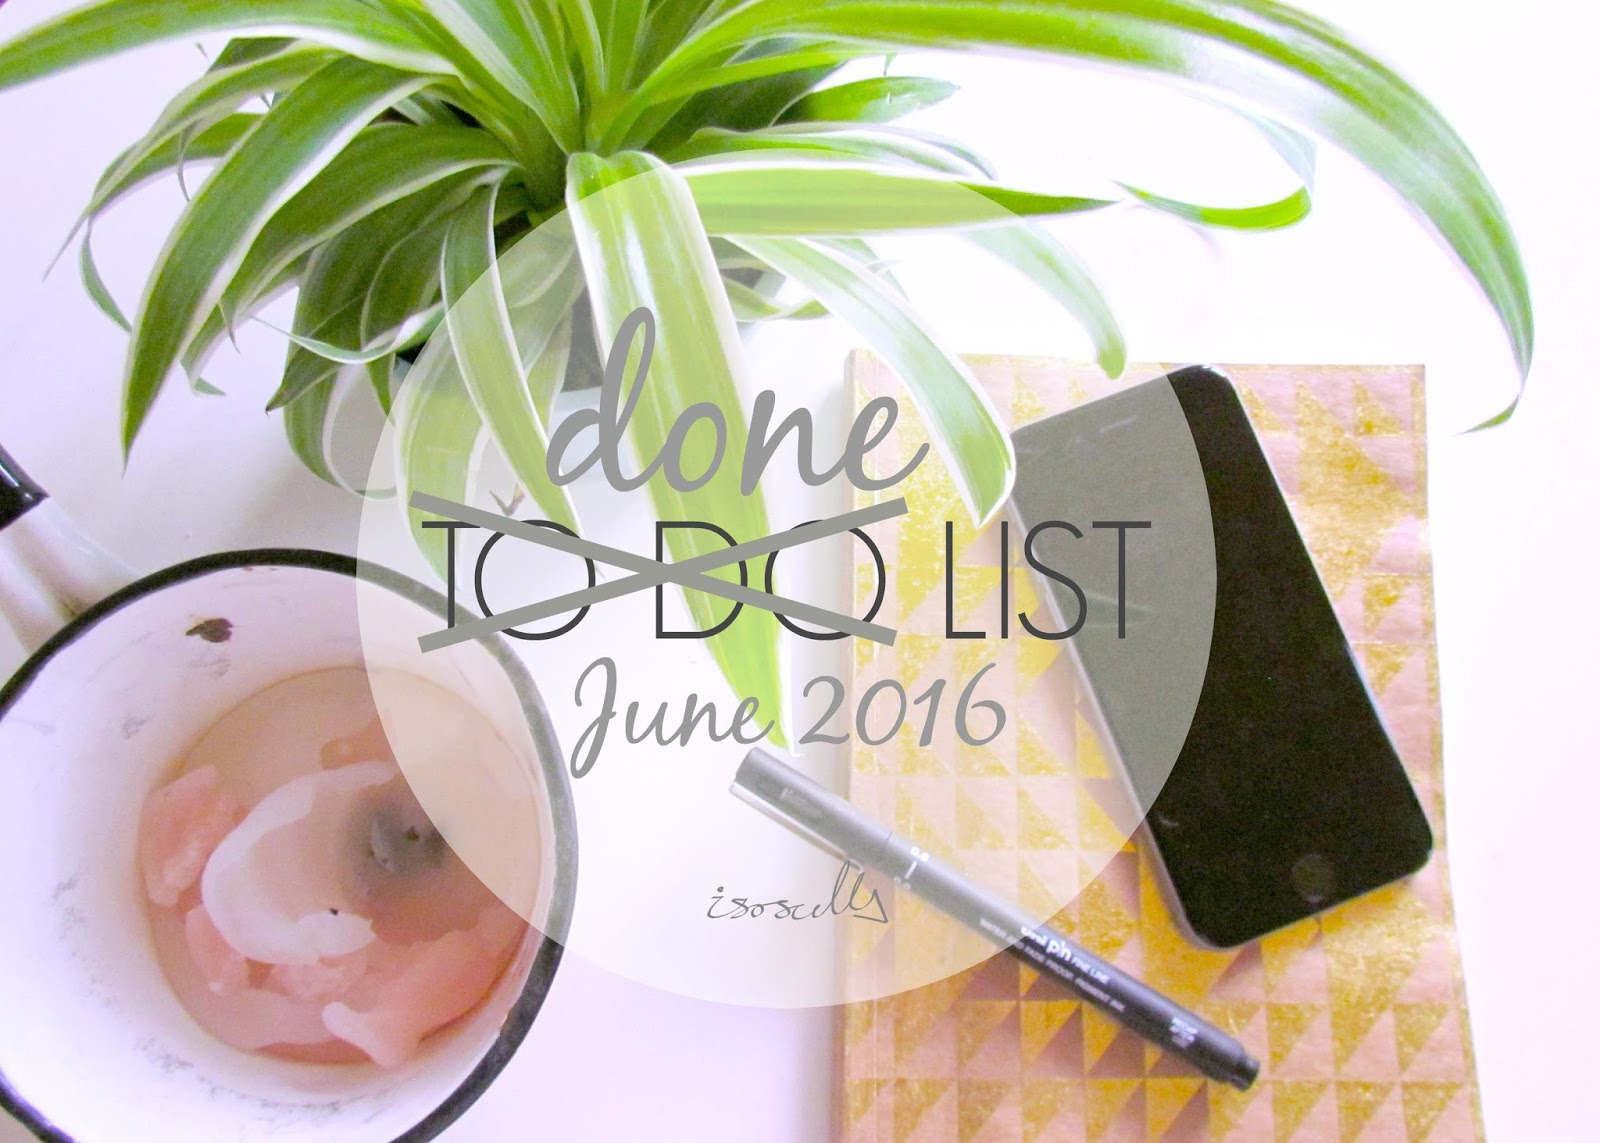 Done List June 2016 by Isoscella